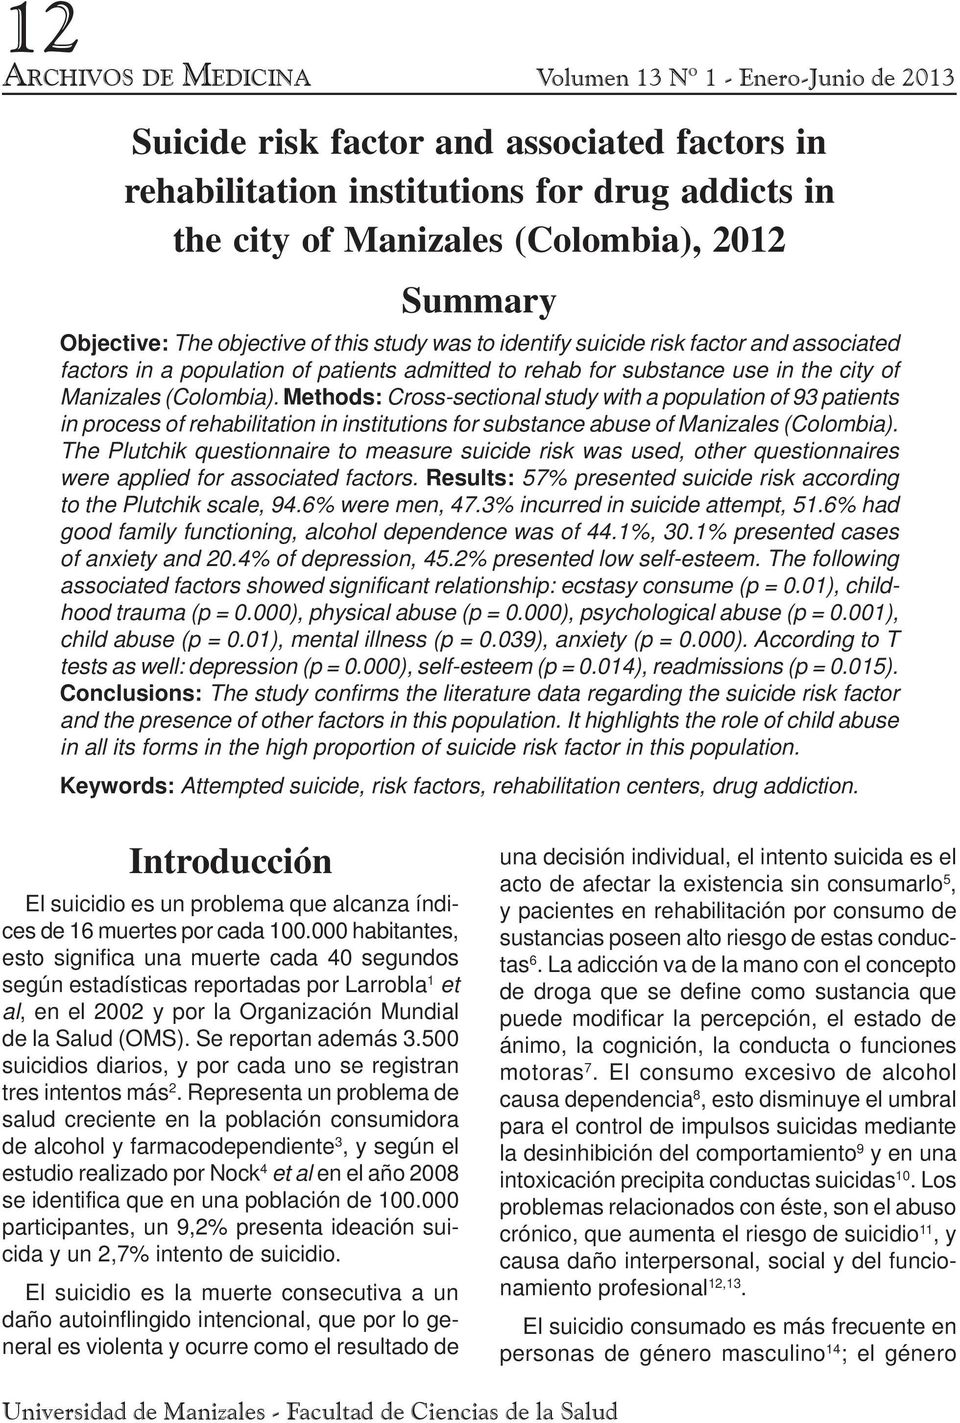 (Colombia). Methods: Cross-sectional study with a population of 93 patients in process of rehabilitation in institutions for substance abuse of Manizales (Colombia).